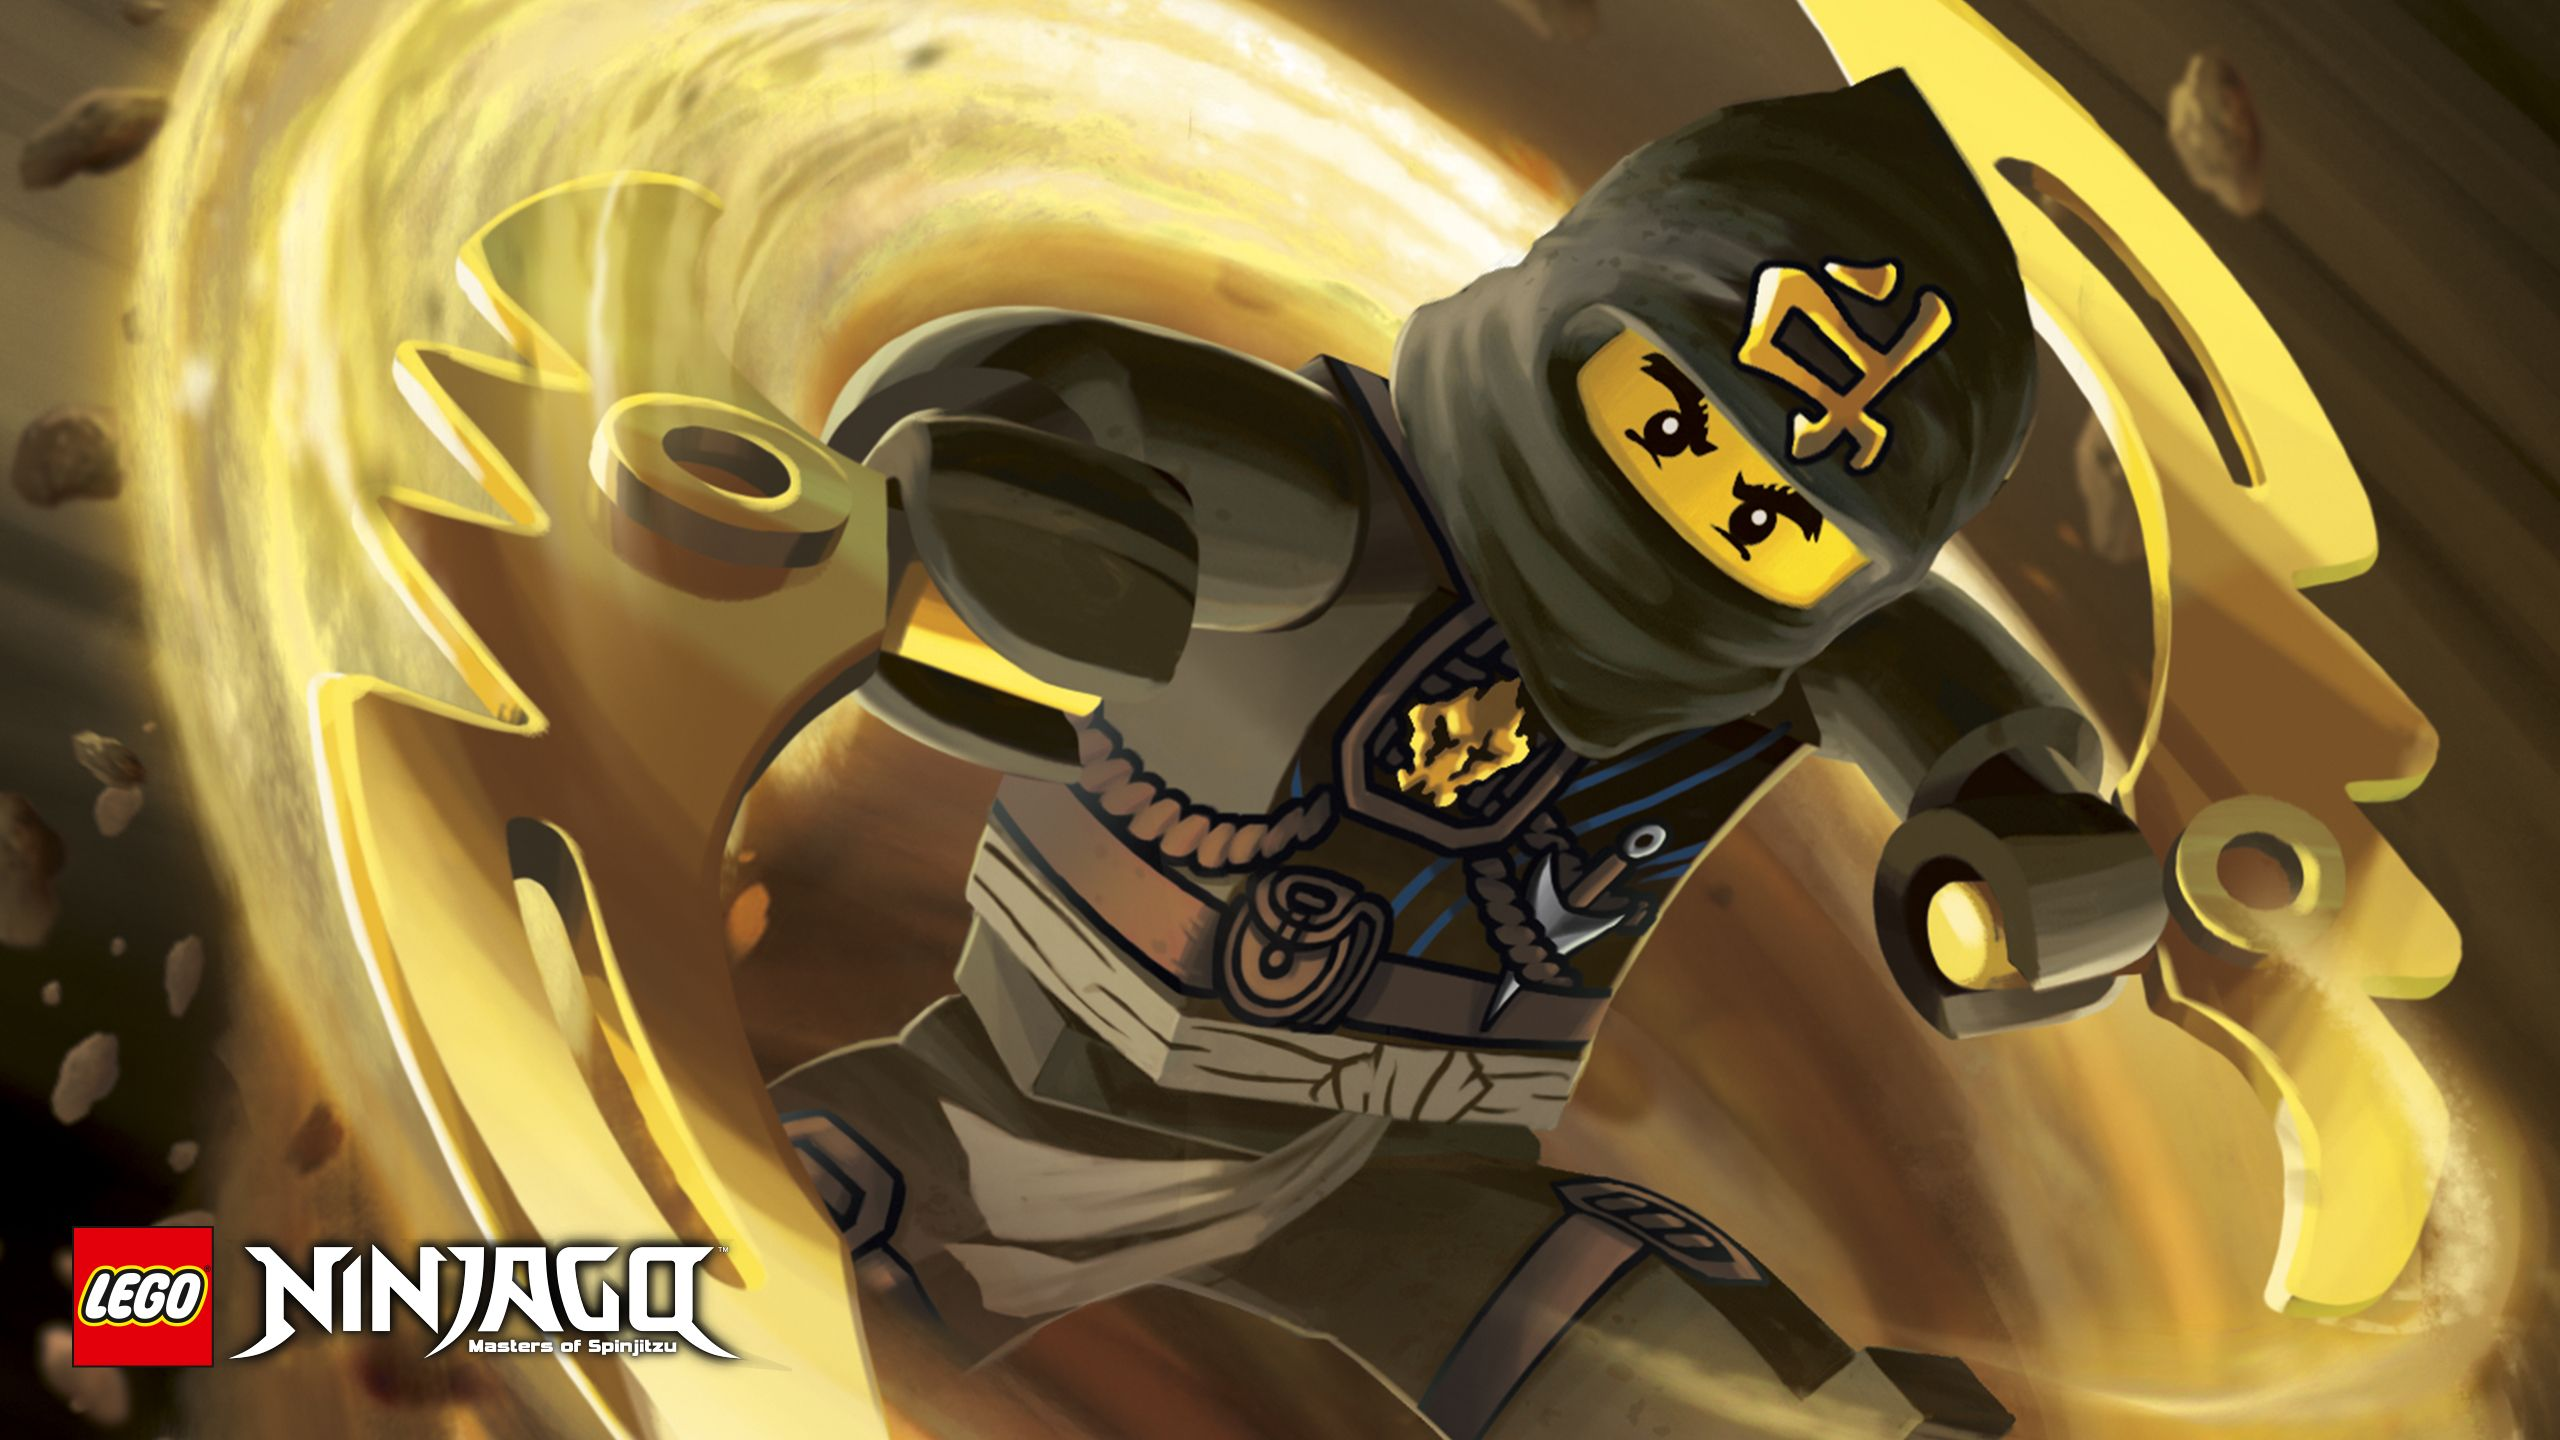 2560x1440 Cole - Tournament of Elements - Wallpapers - LEGO® NINJAGO® - LEGO ...